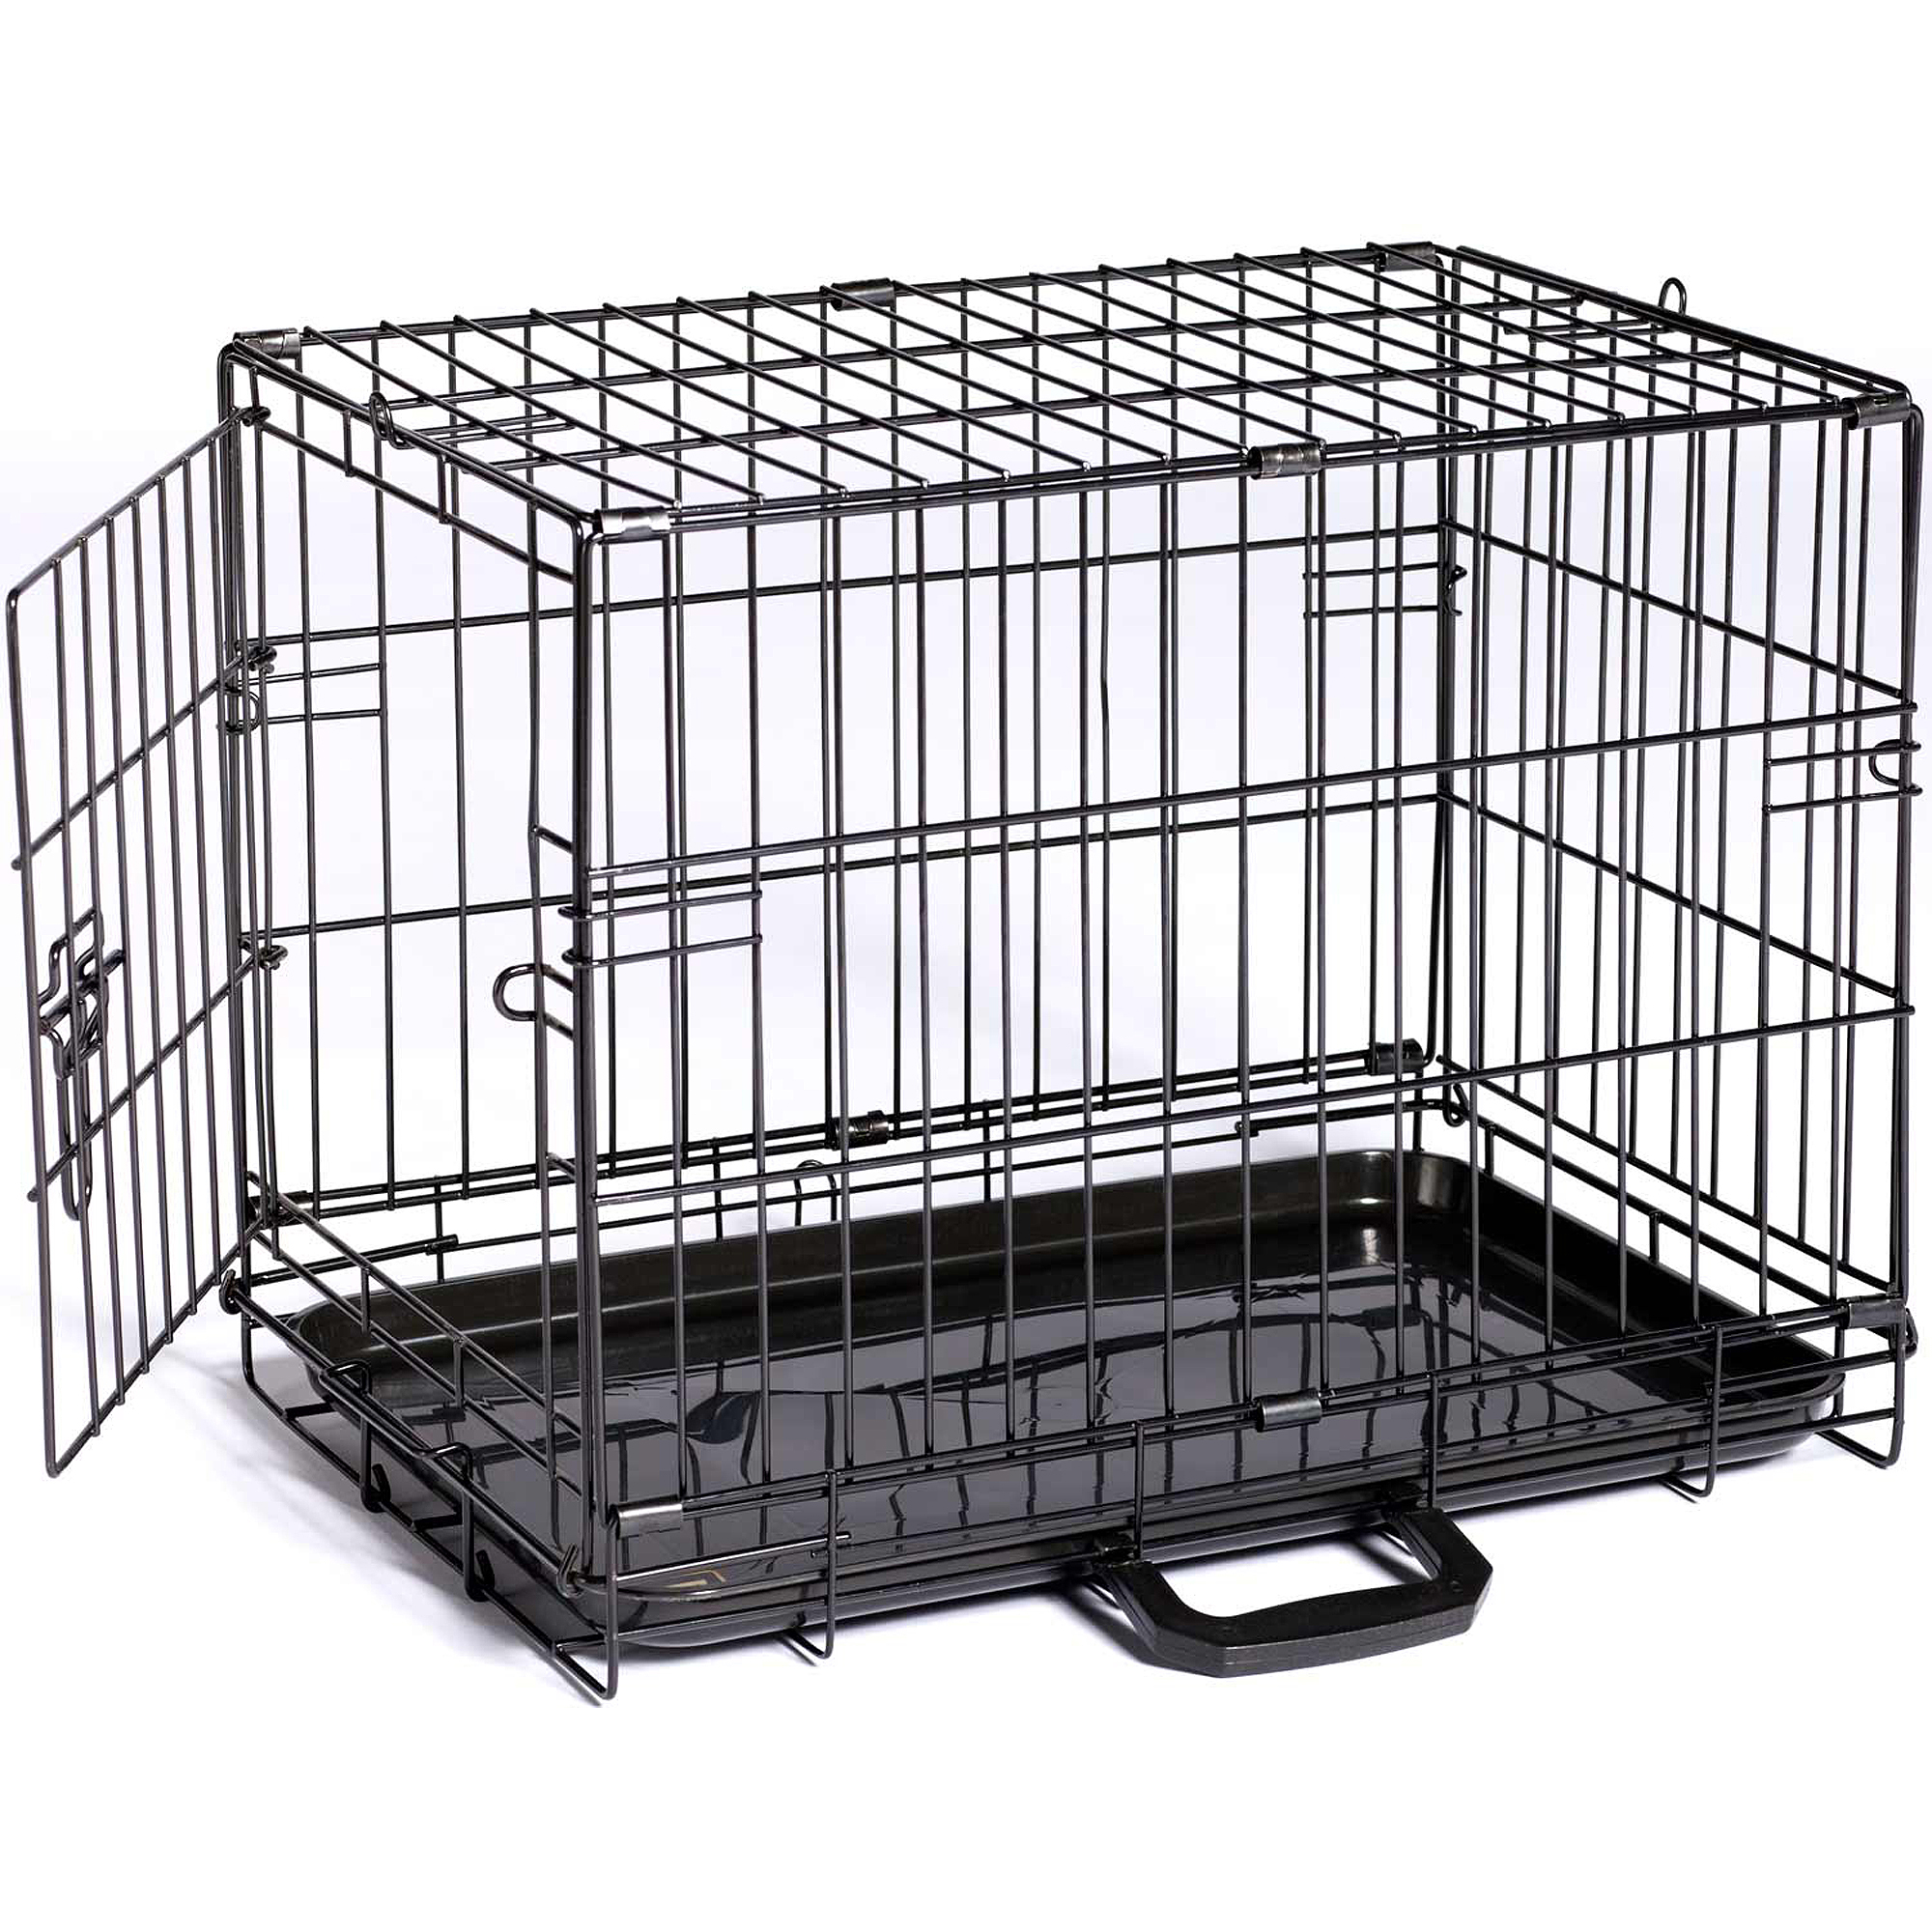 Prevue Pet Products Home-On-The Go Single Door Dog Crate, XXS